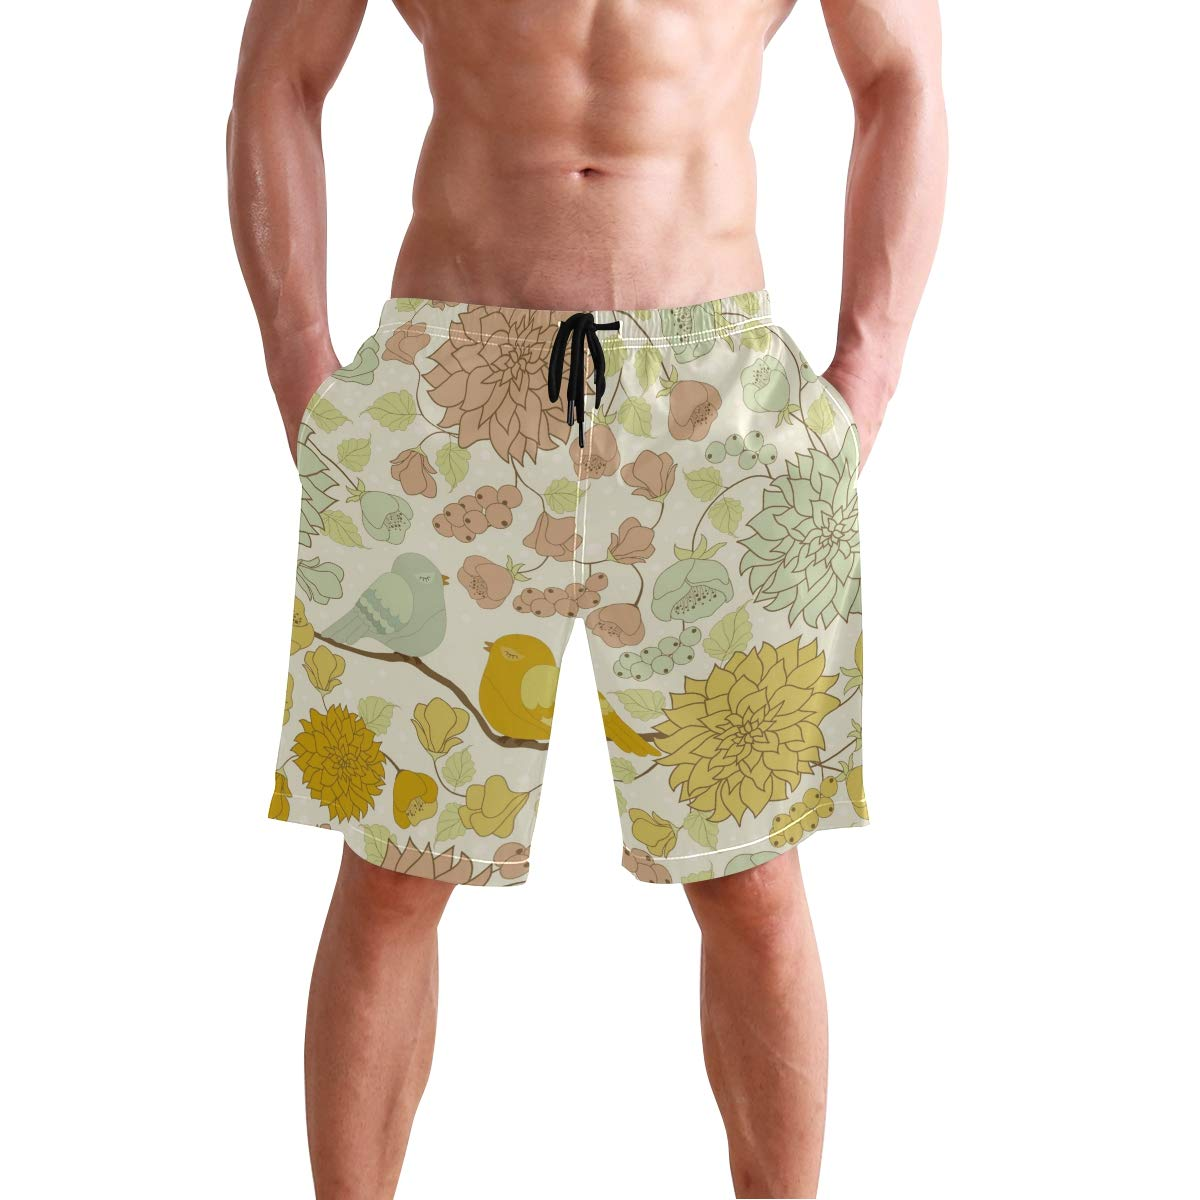 Mens Swim Trunks Bird Flower Quick Dry Beach Board Short with Mesh Lining